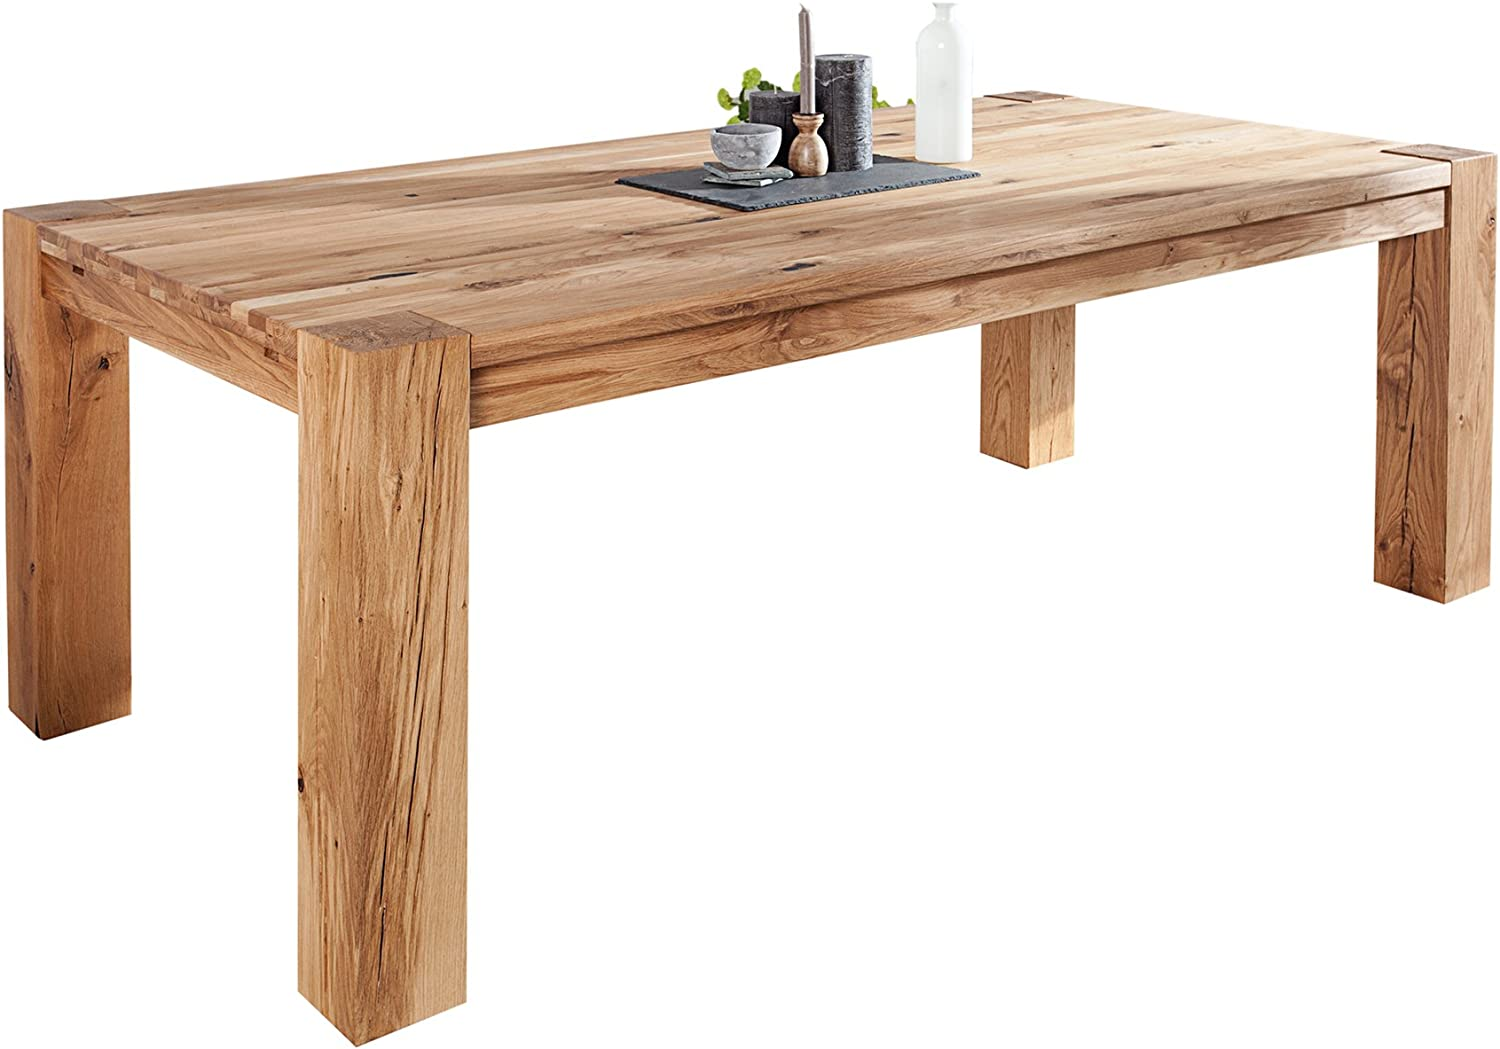 Wooden Solid Wild Oak 9 cm Dining Table Oiled/Made in Europe Solid Wood  Table